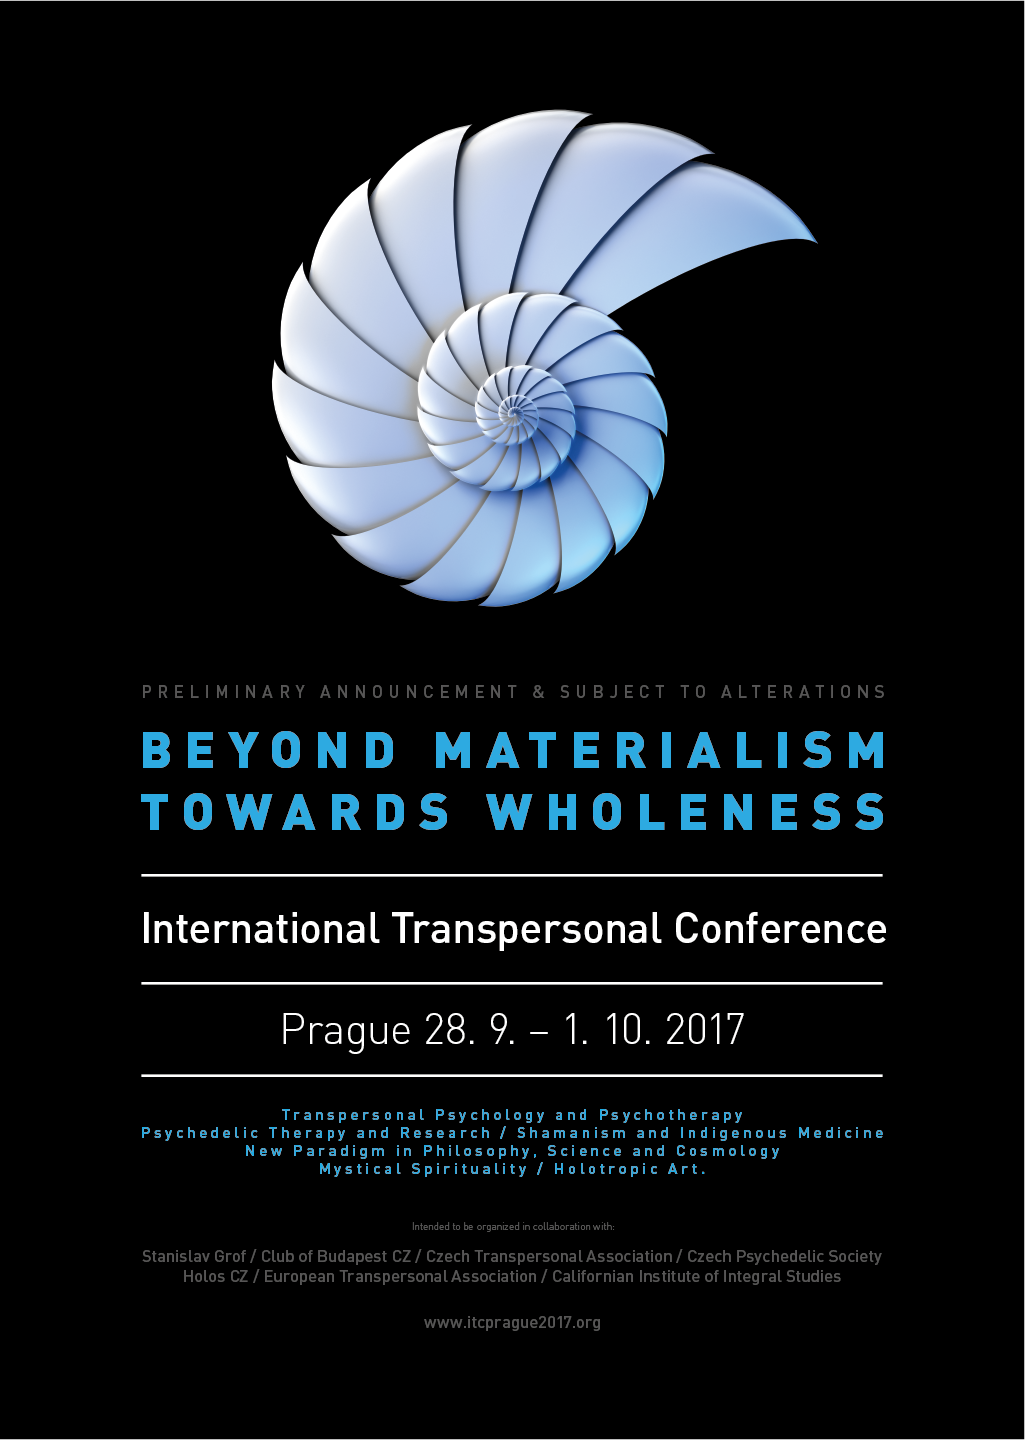 European Transpersonal Conference in Prague - from September 27 till October 1, 2017.